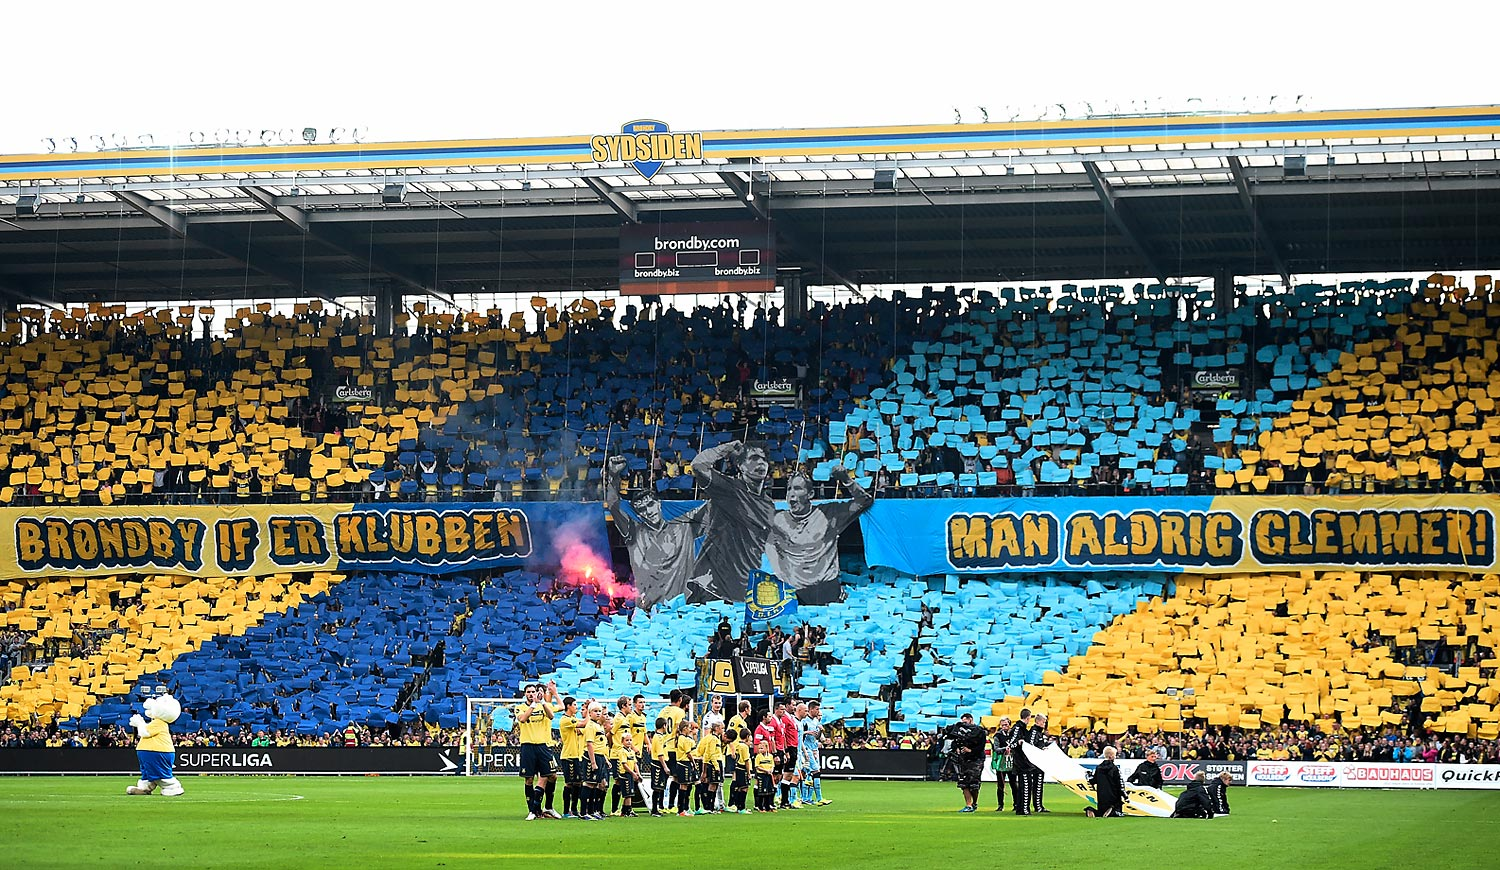 Brondby IF fans unveil a tifo ahead of a match in Denmark against Randers FC.